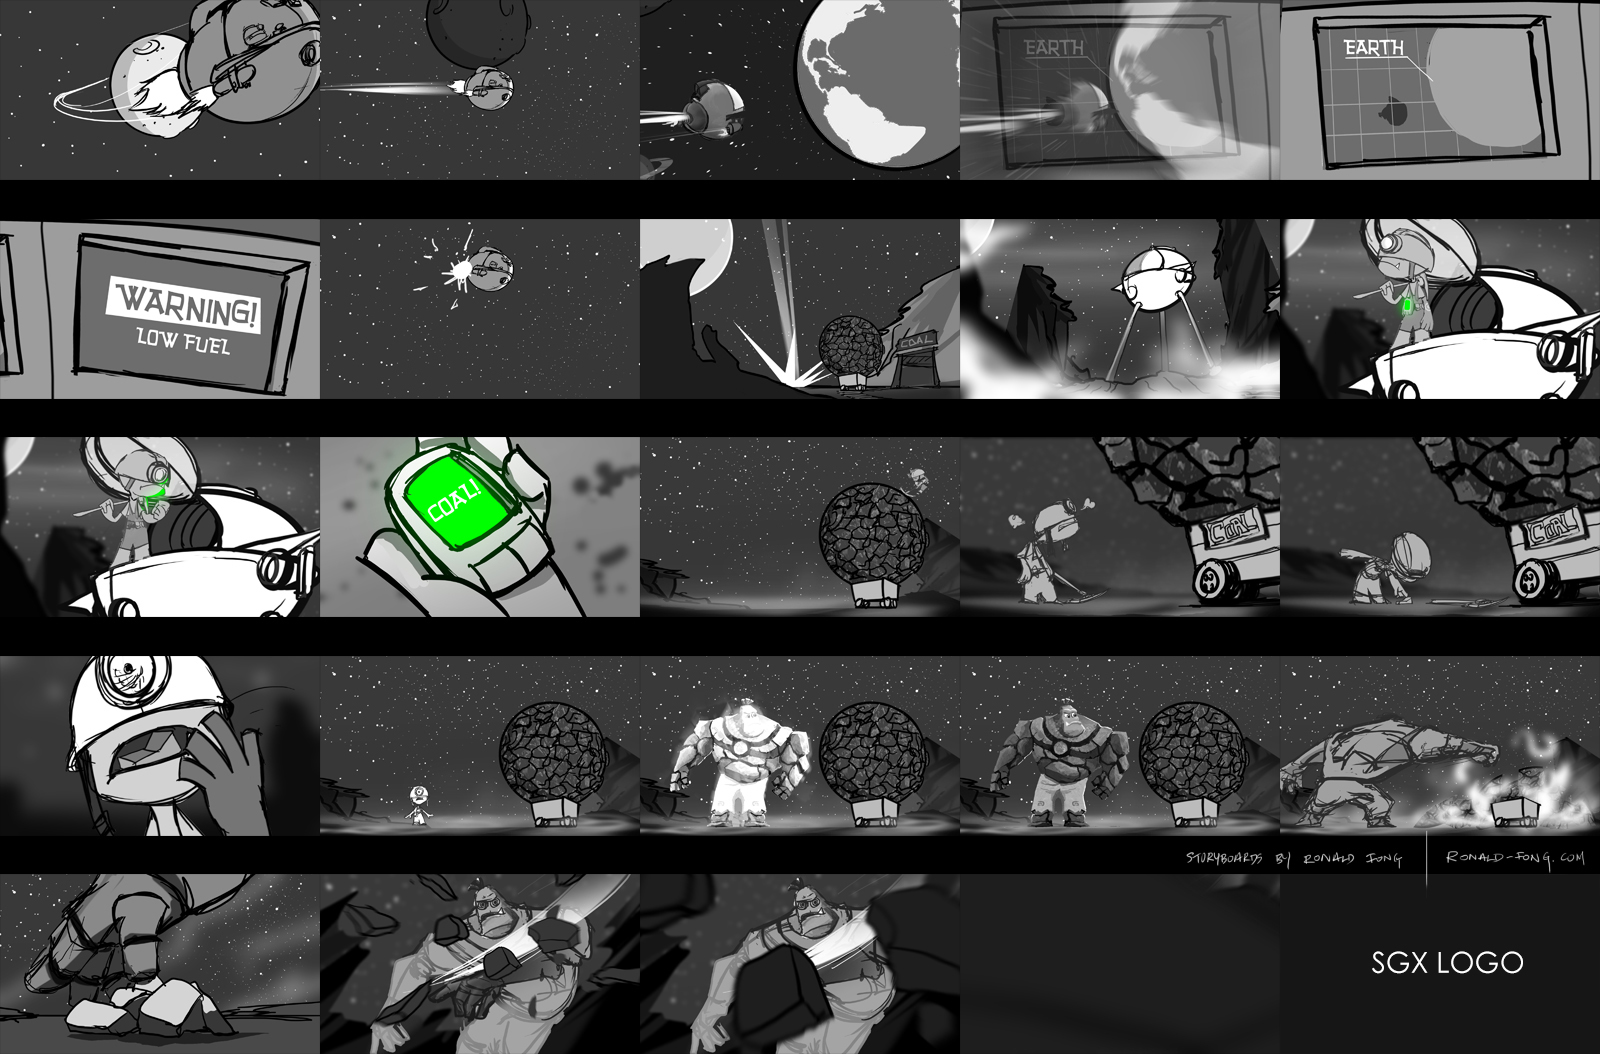 SGX Animation Storyboards by Ronald Fong